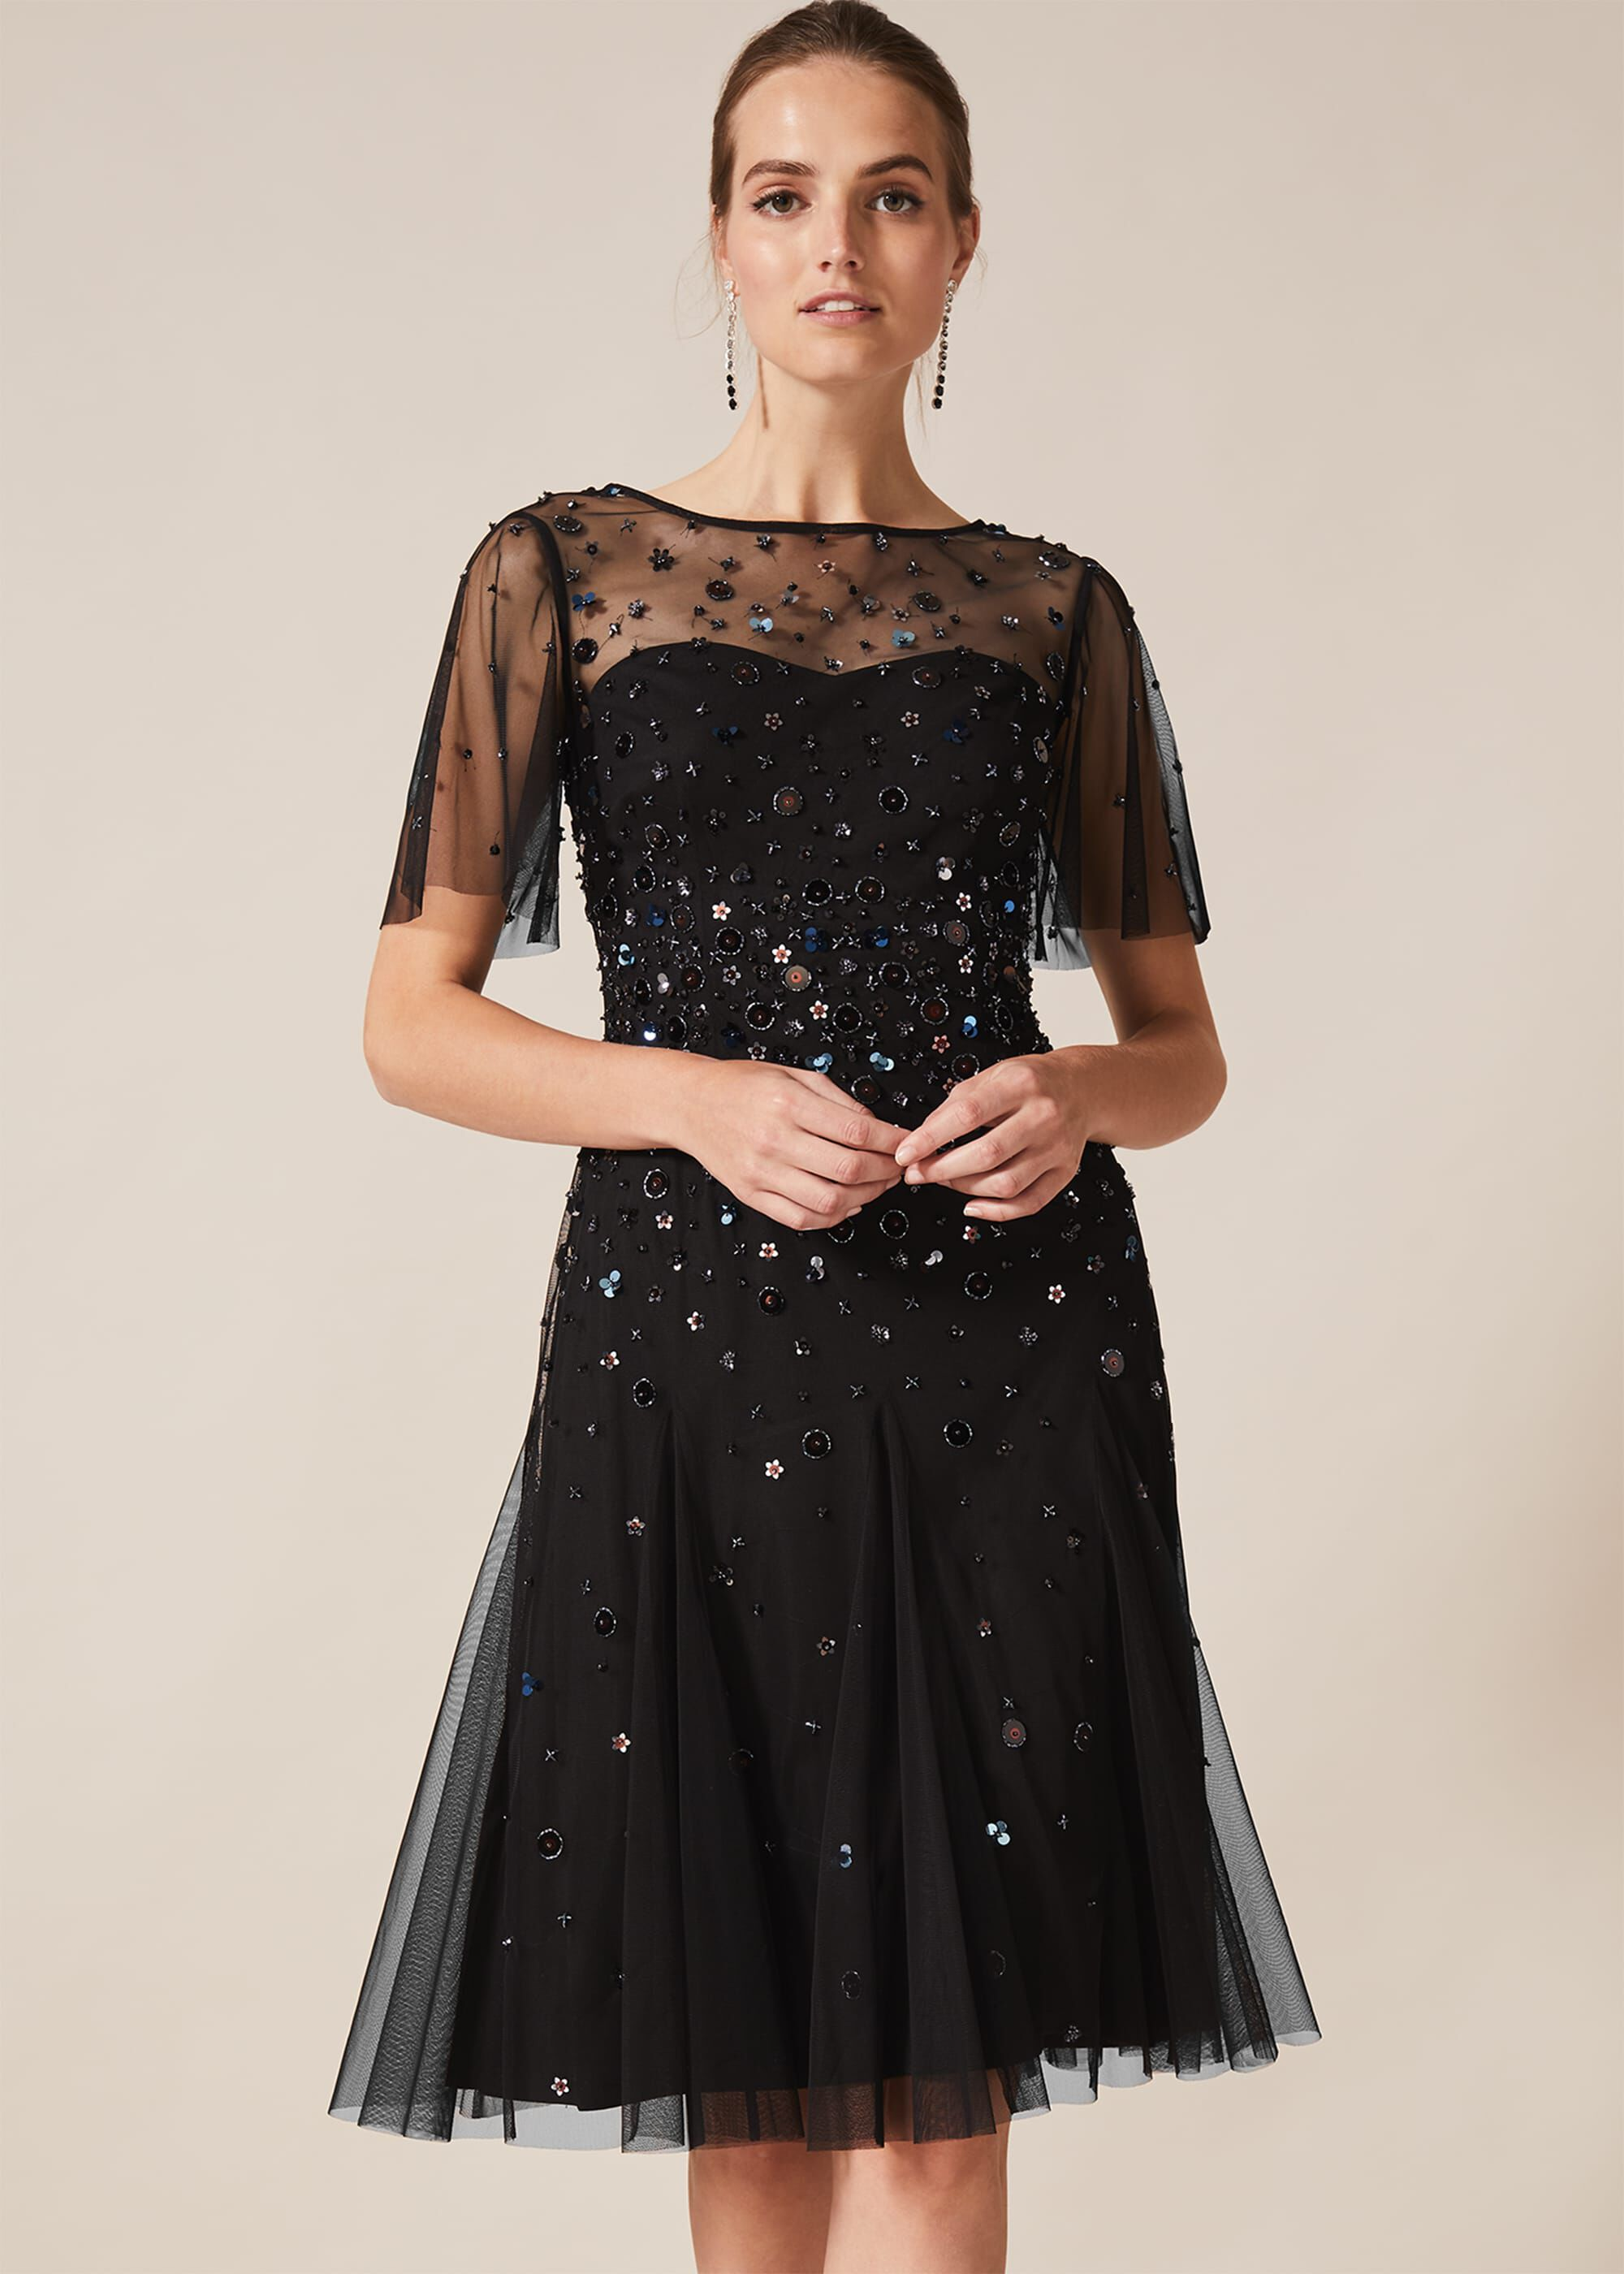 Phase Eight Molly Short Sequin Dress, Multicoloured, Cocktail, Occasion Dress